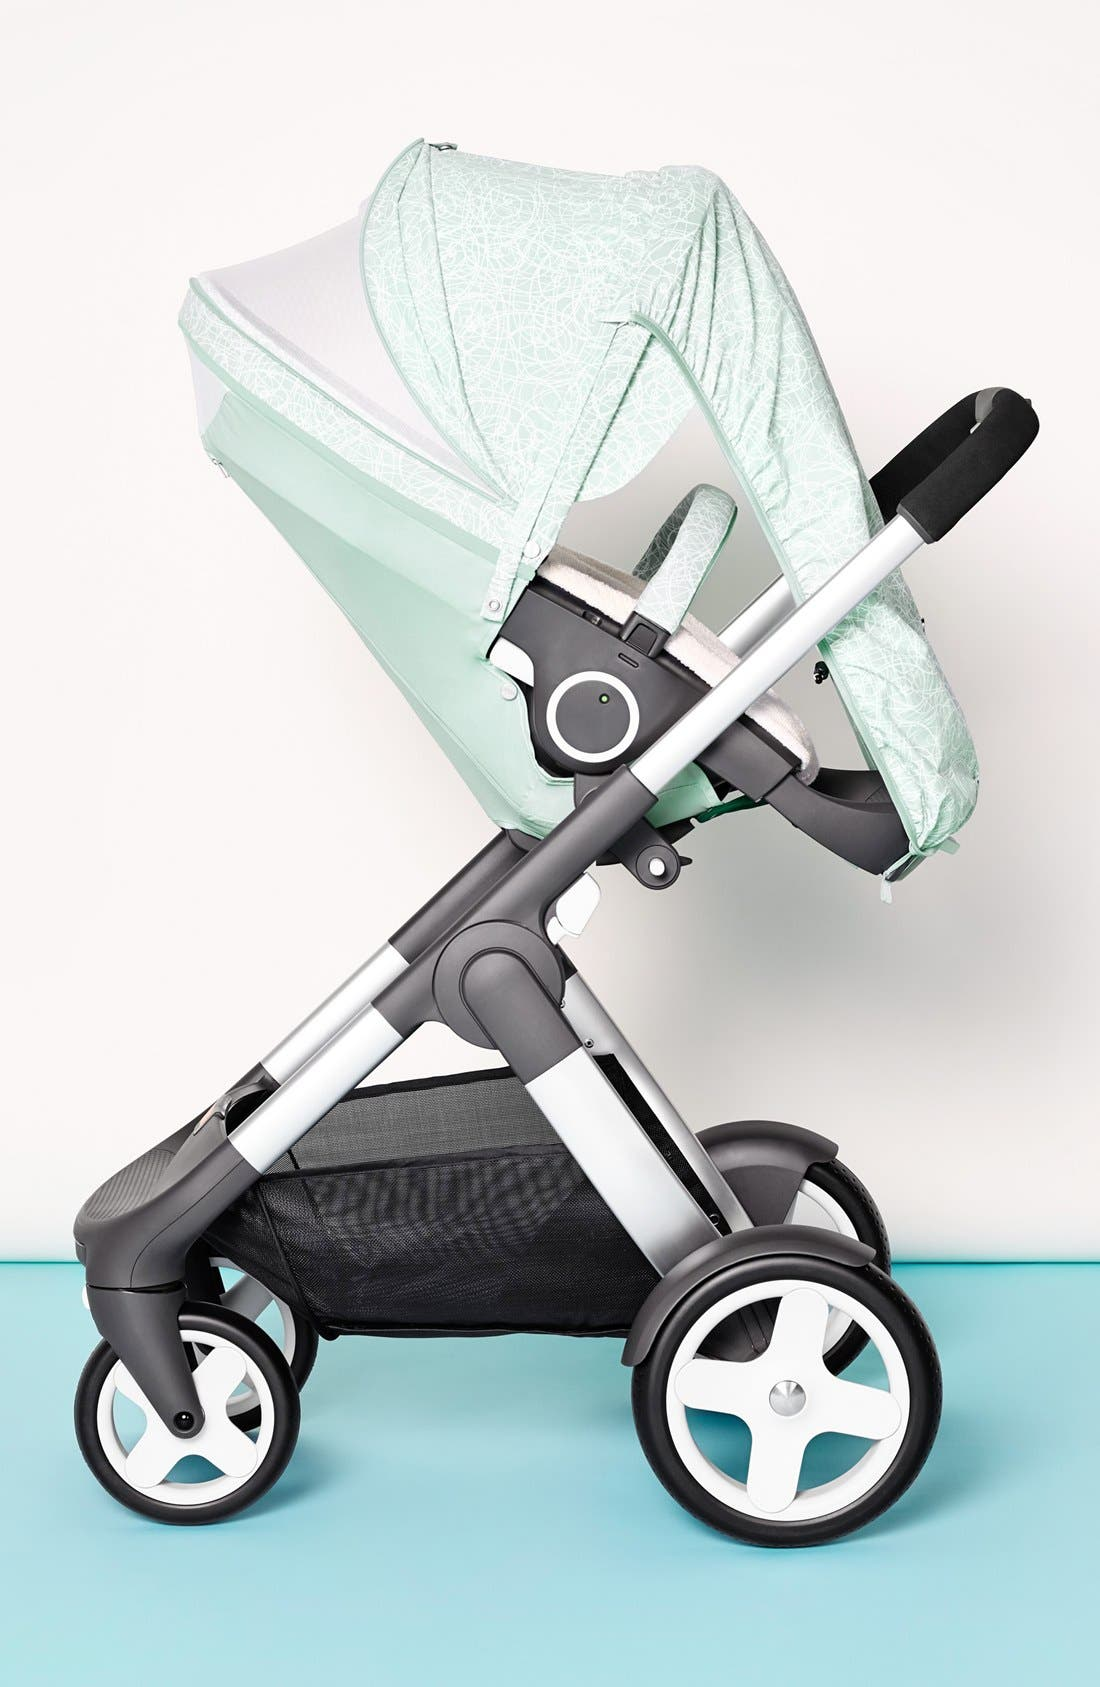 Baby 'Xplory<sup>®</sup> Stroller Summer Kit' Shade Set,                             Alternate thumbnail 3, color,                             SALTY BLUE